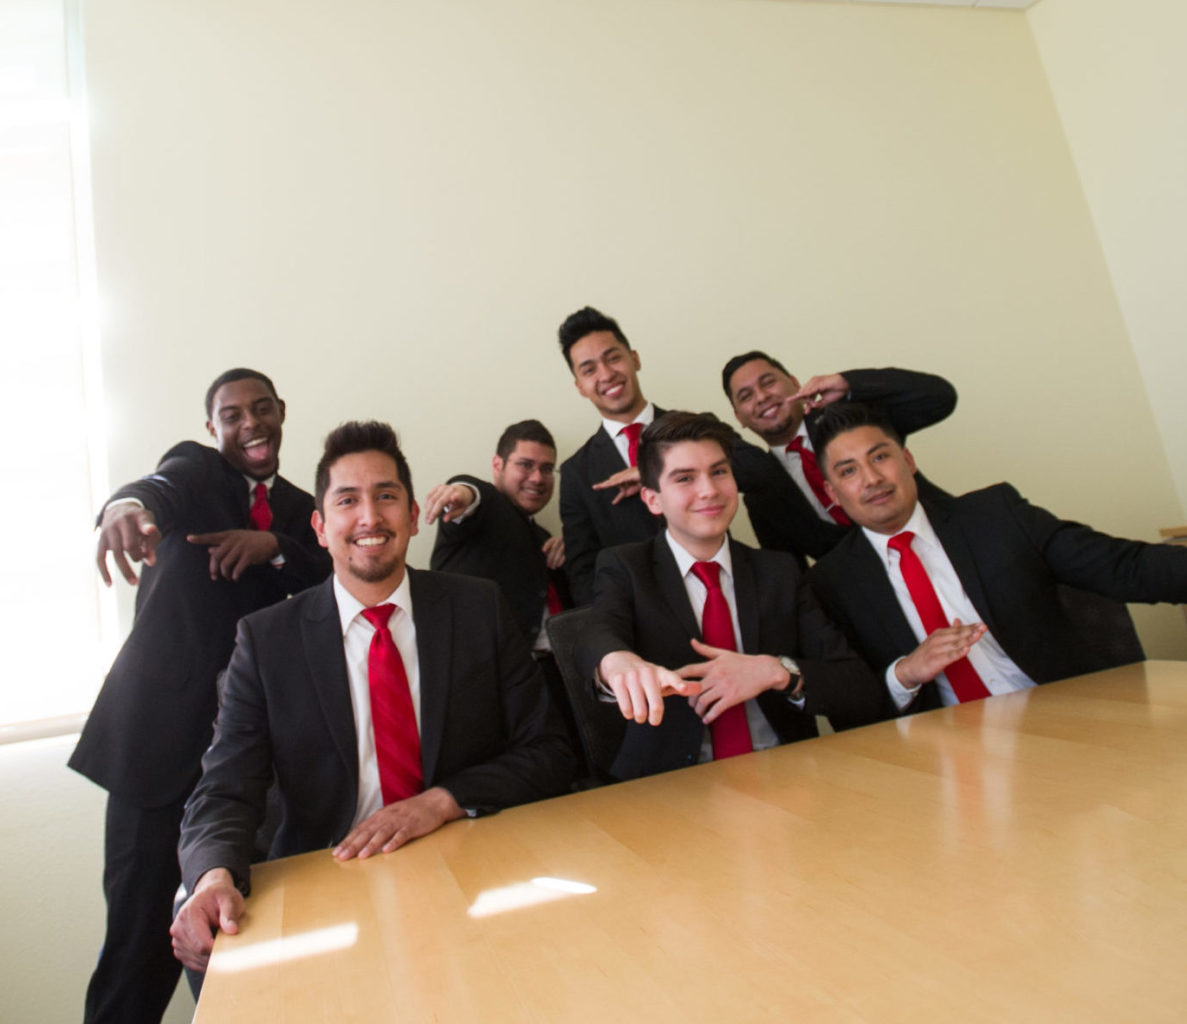 Group shot of Phi Iota Alpha Anniversary.